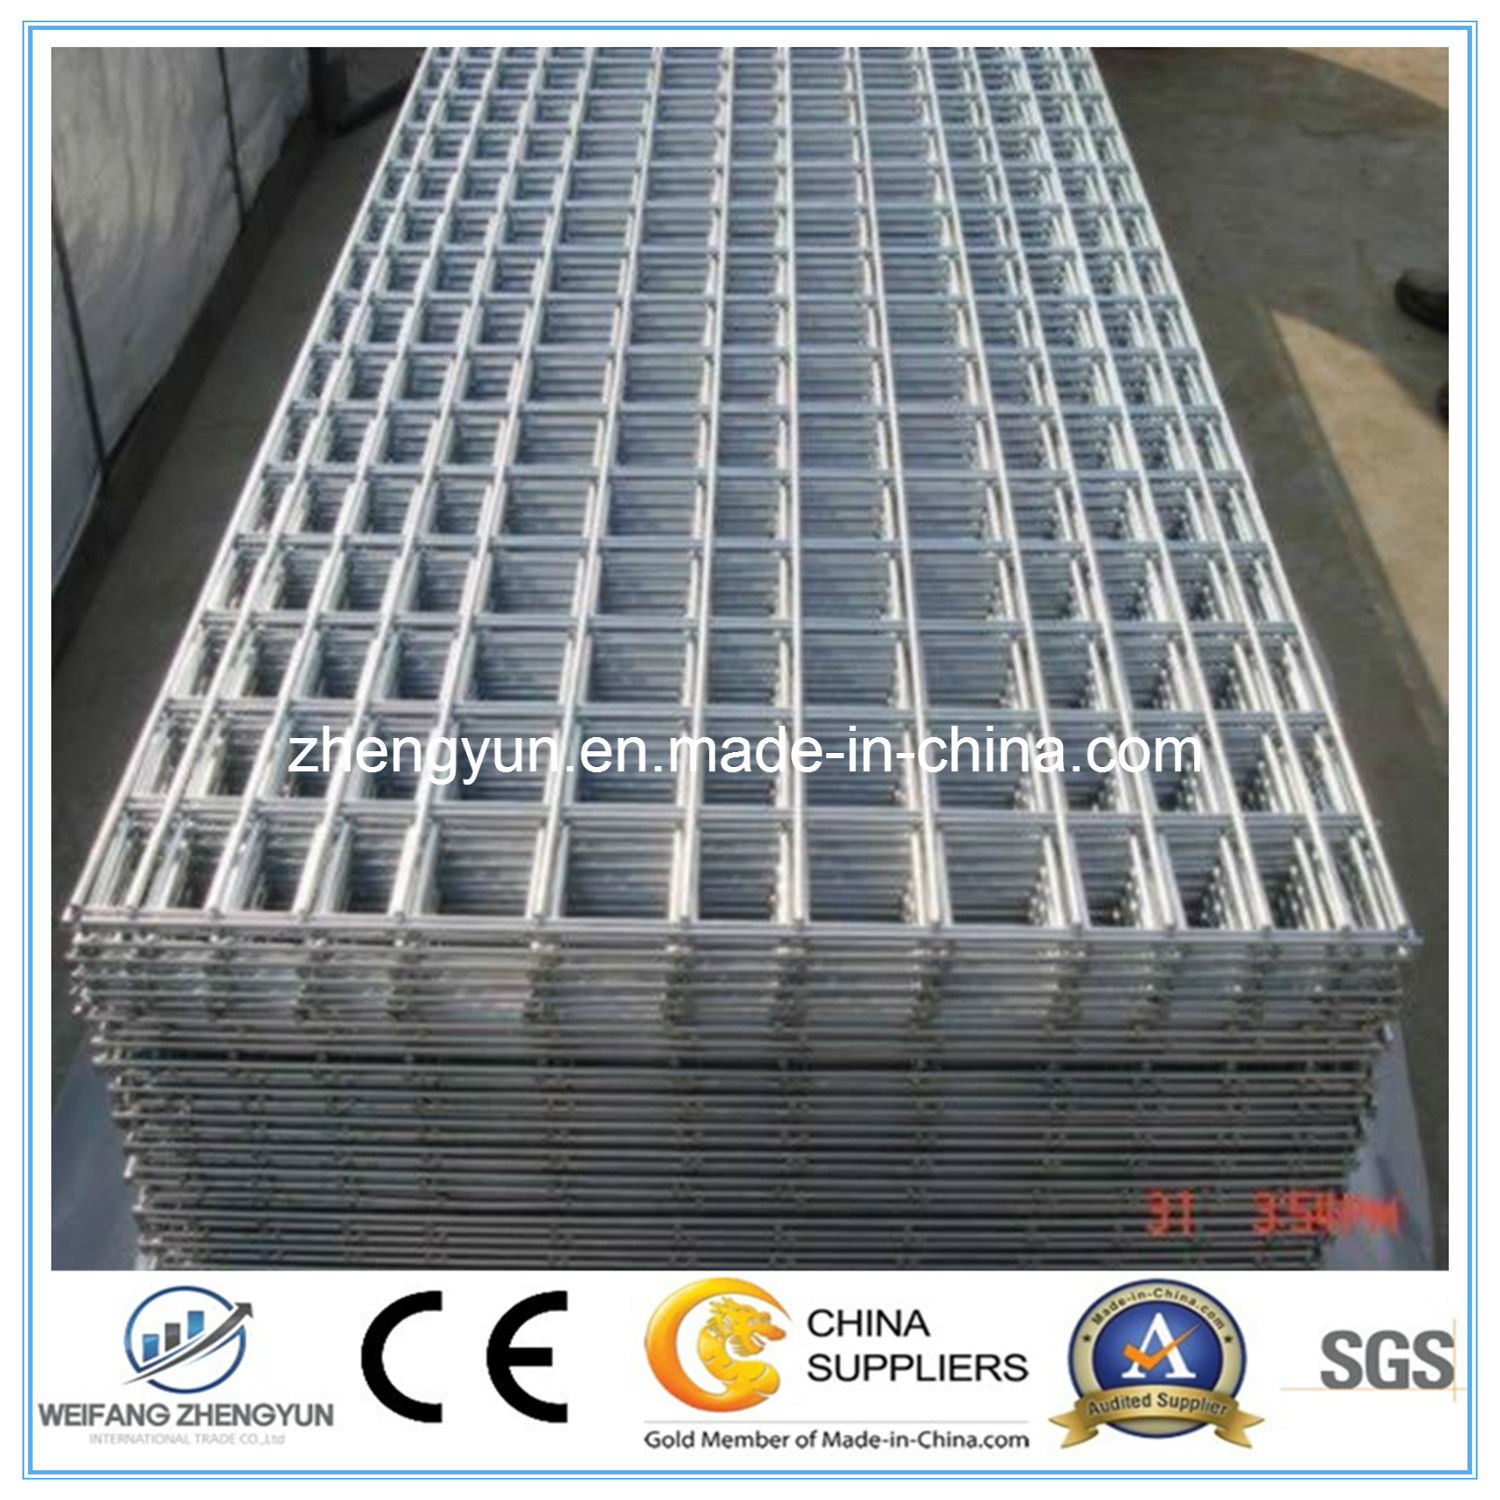 High Quality Square Wire Mesh, Galvanized Welded Wire Mesh Panel